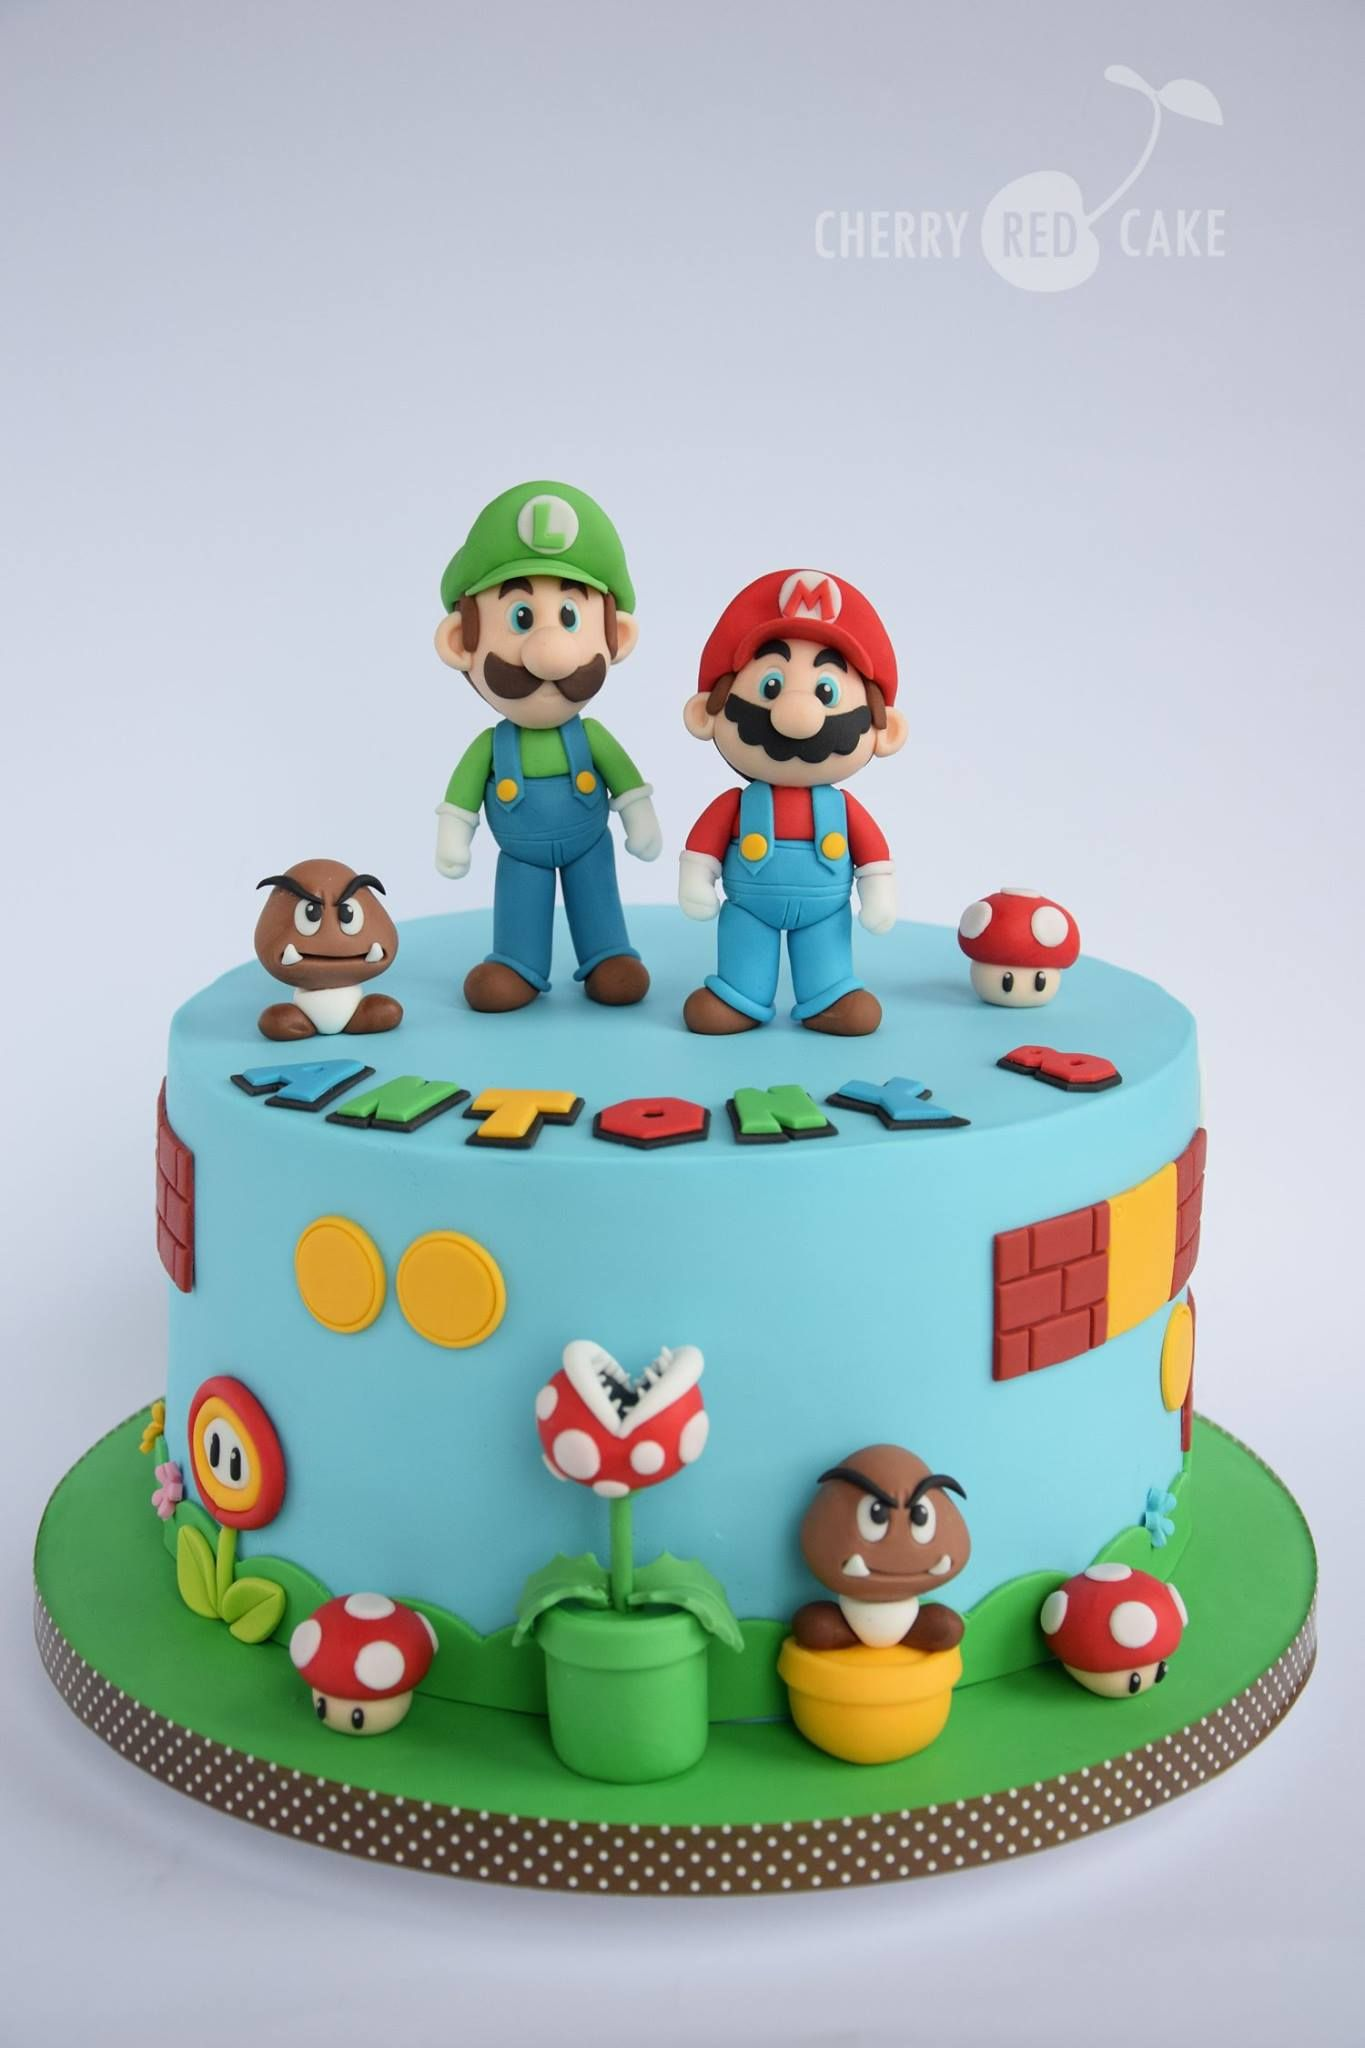 super mario bros cake baby shower ideas pinterest g teau mario et anniversaires. Black Bedroom Furniture Sets. Home Design Ideas